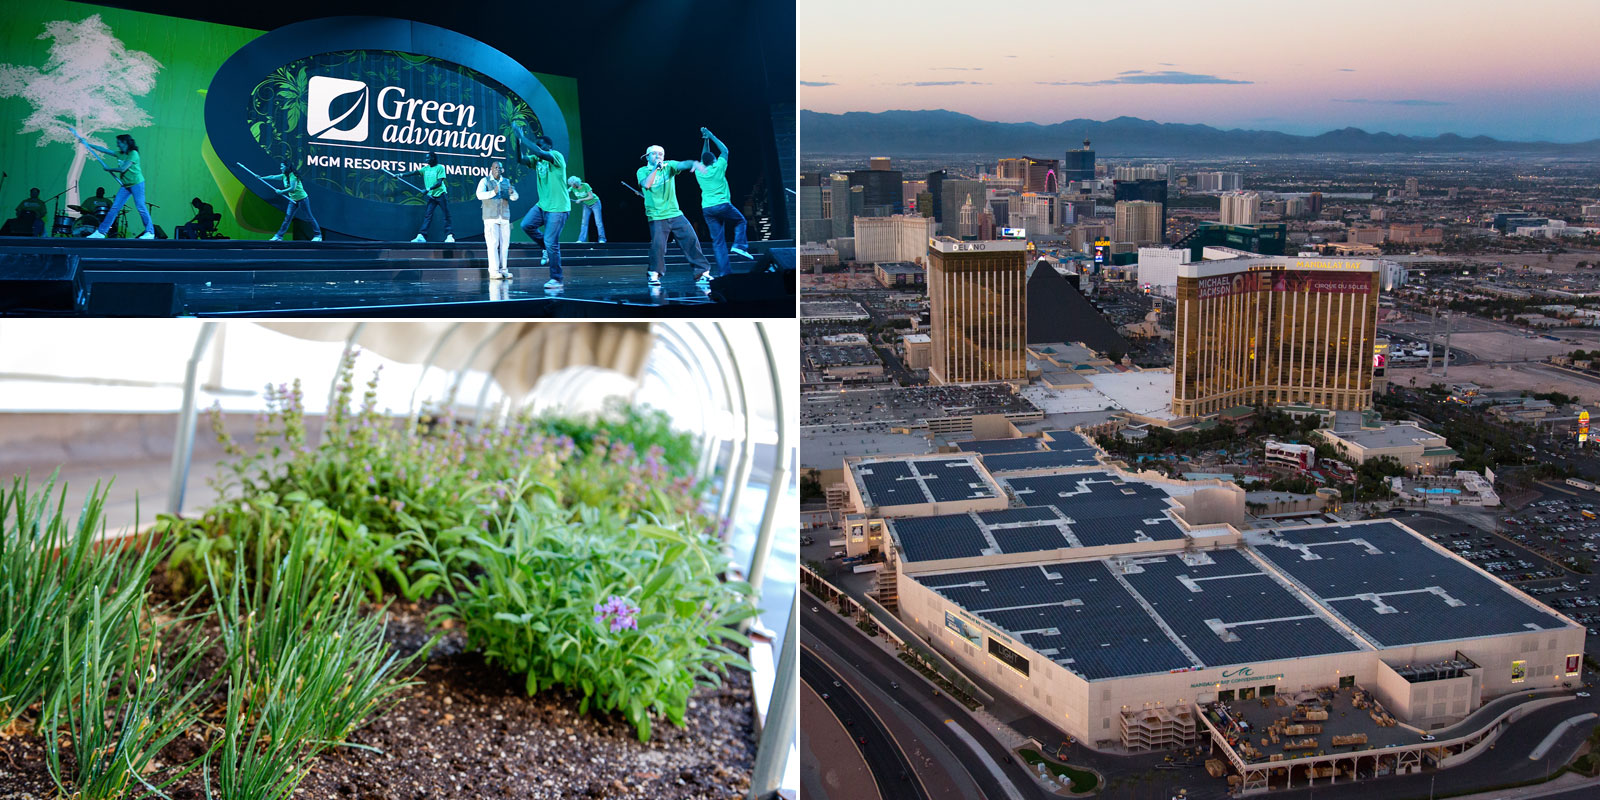 MGM Resorts International's Green Advantage program, Bellagio's herb garden and Mandalay Bay's solar installation